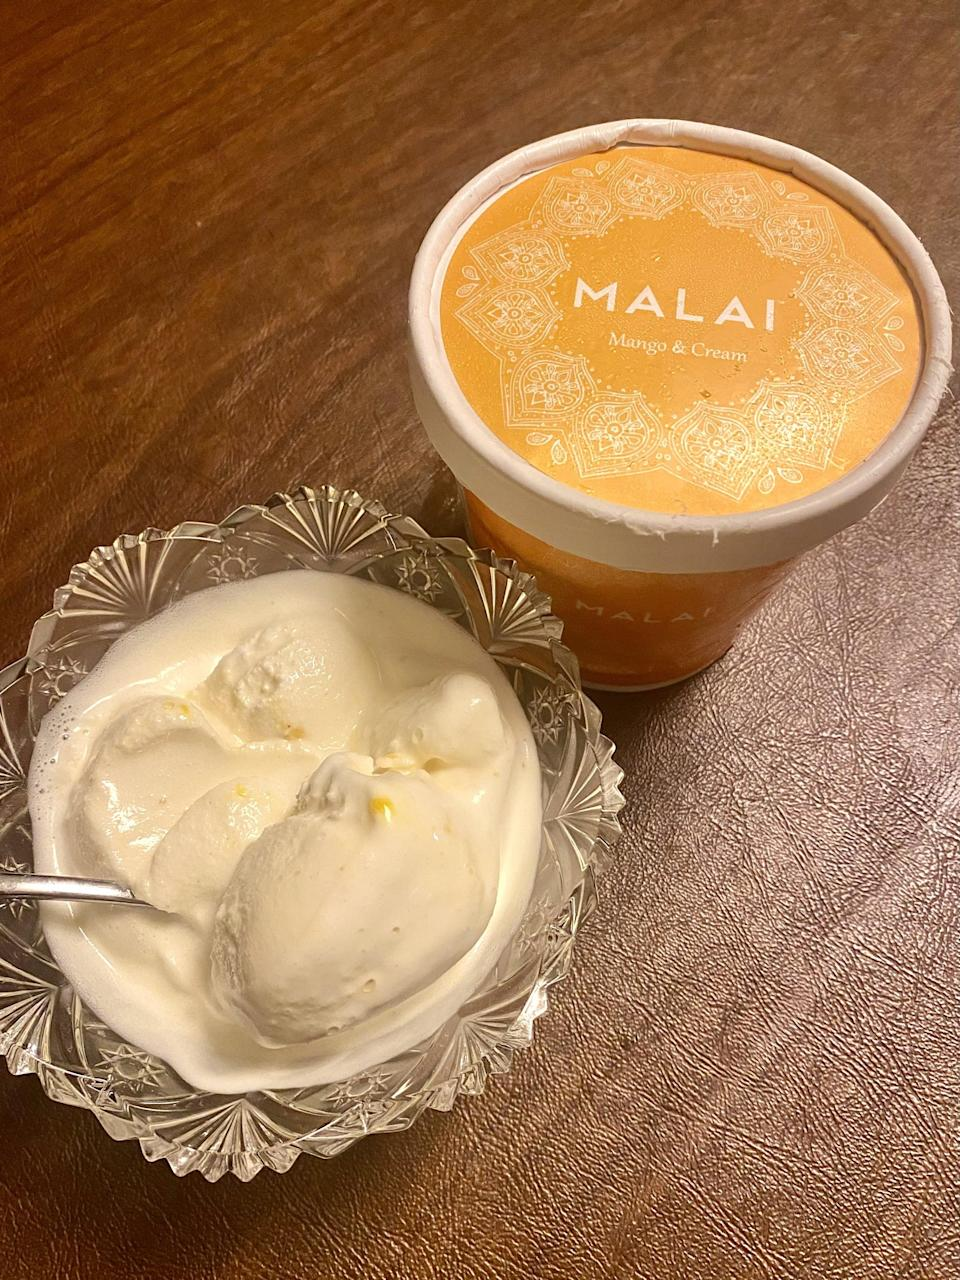 <p>The Mango and Cream ice cream from the <span>Kalamata Kitchen's Adventure Ice Cream Pack</span> ($89) tastes like a mango milkshake, more specifically a mango lassi. It's sweet and fruity, rich and creamy, with little bits of mango incorporated into each bite. The texture of this pint is almost like a sorbet-ice cream blend. If you love mangos, you'll absolutely adore this. This flavor is something that everyone can enjoy, it's dependable and a classic. It's delish and a safe bet!</p>